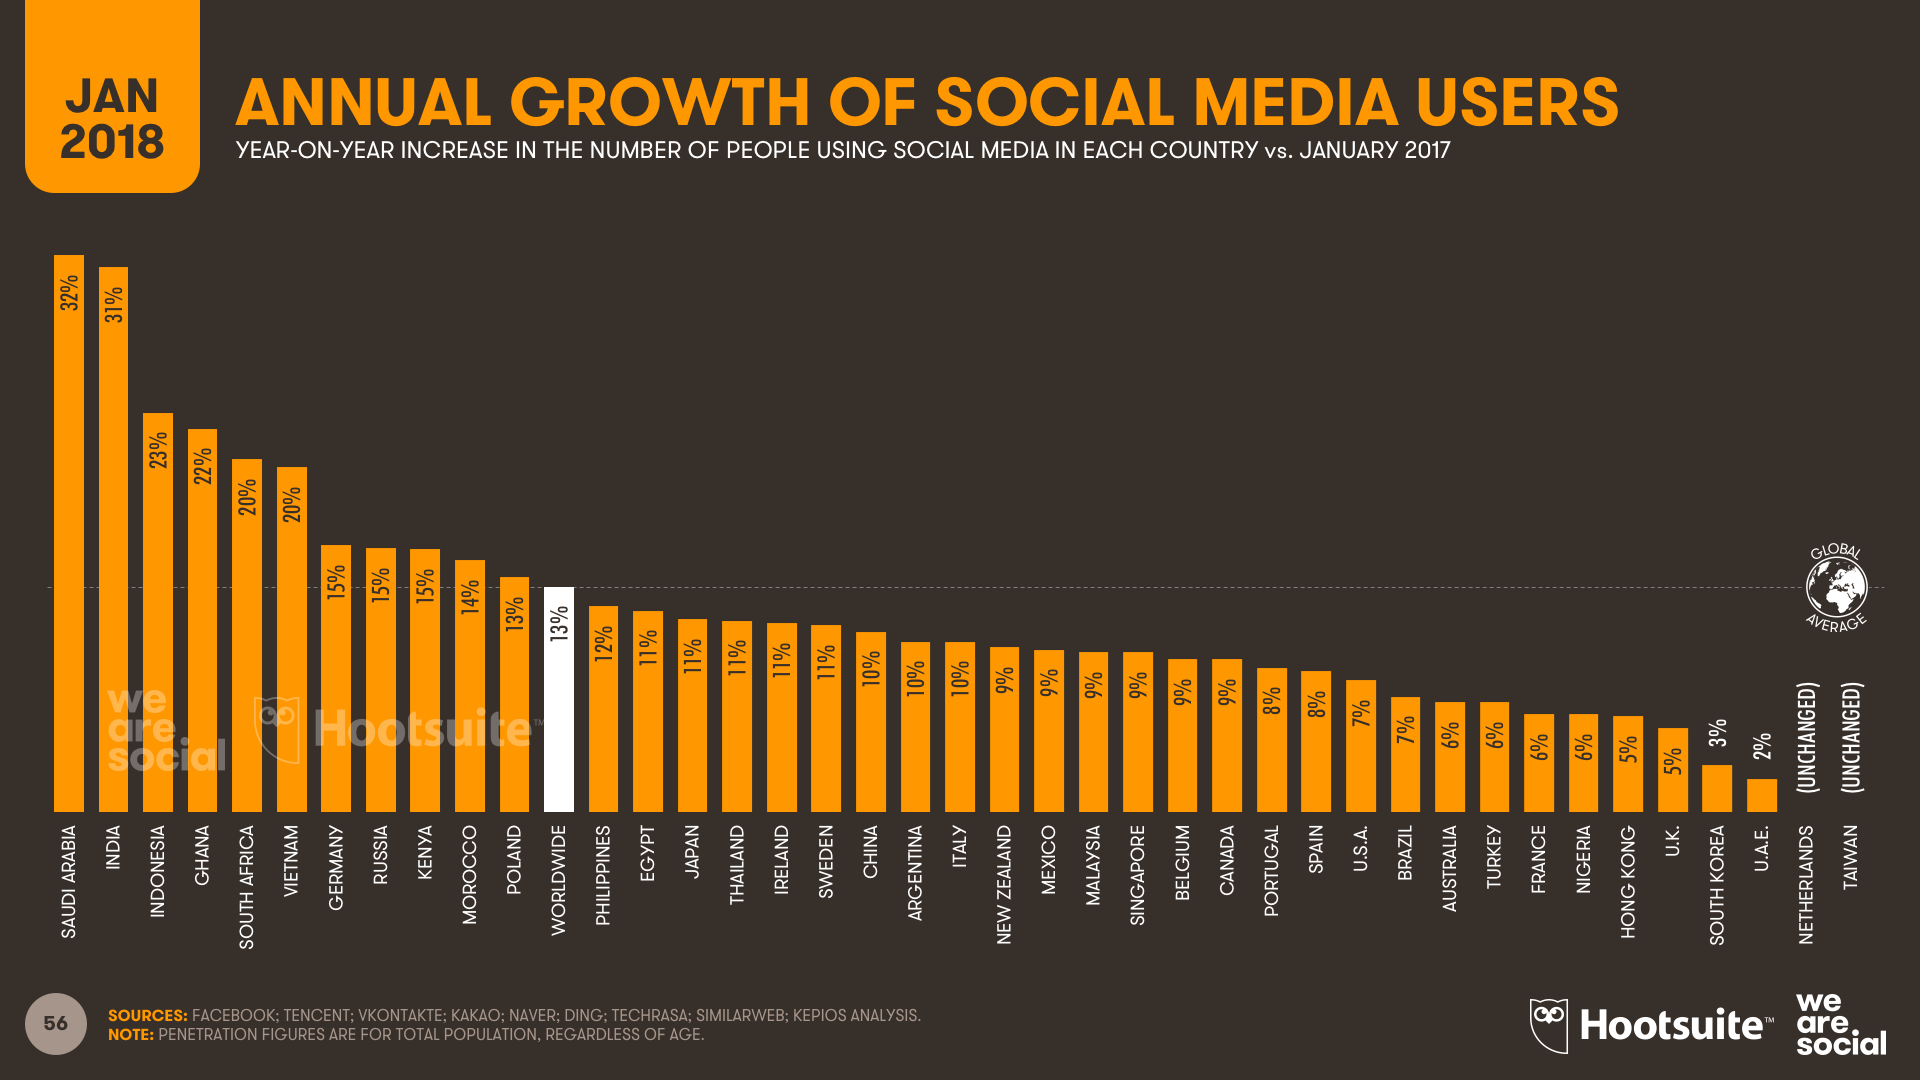 Annual growth in the number of social media users, January 2018